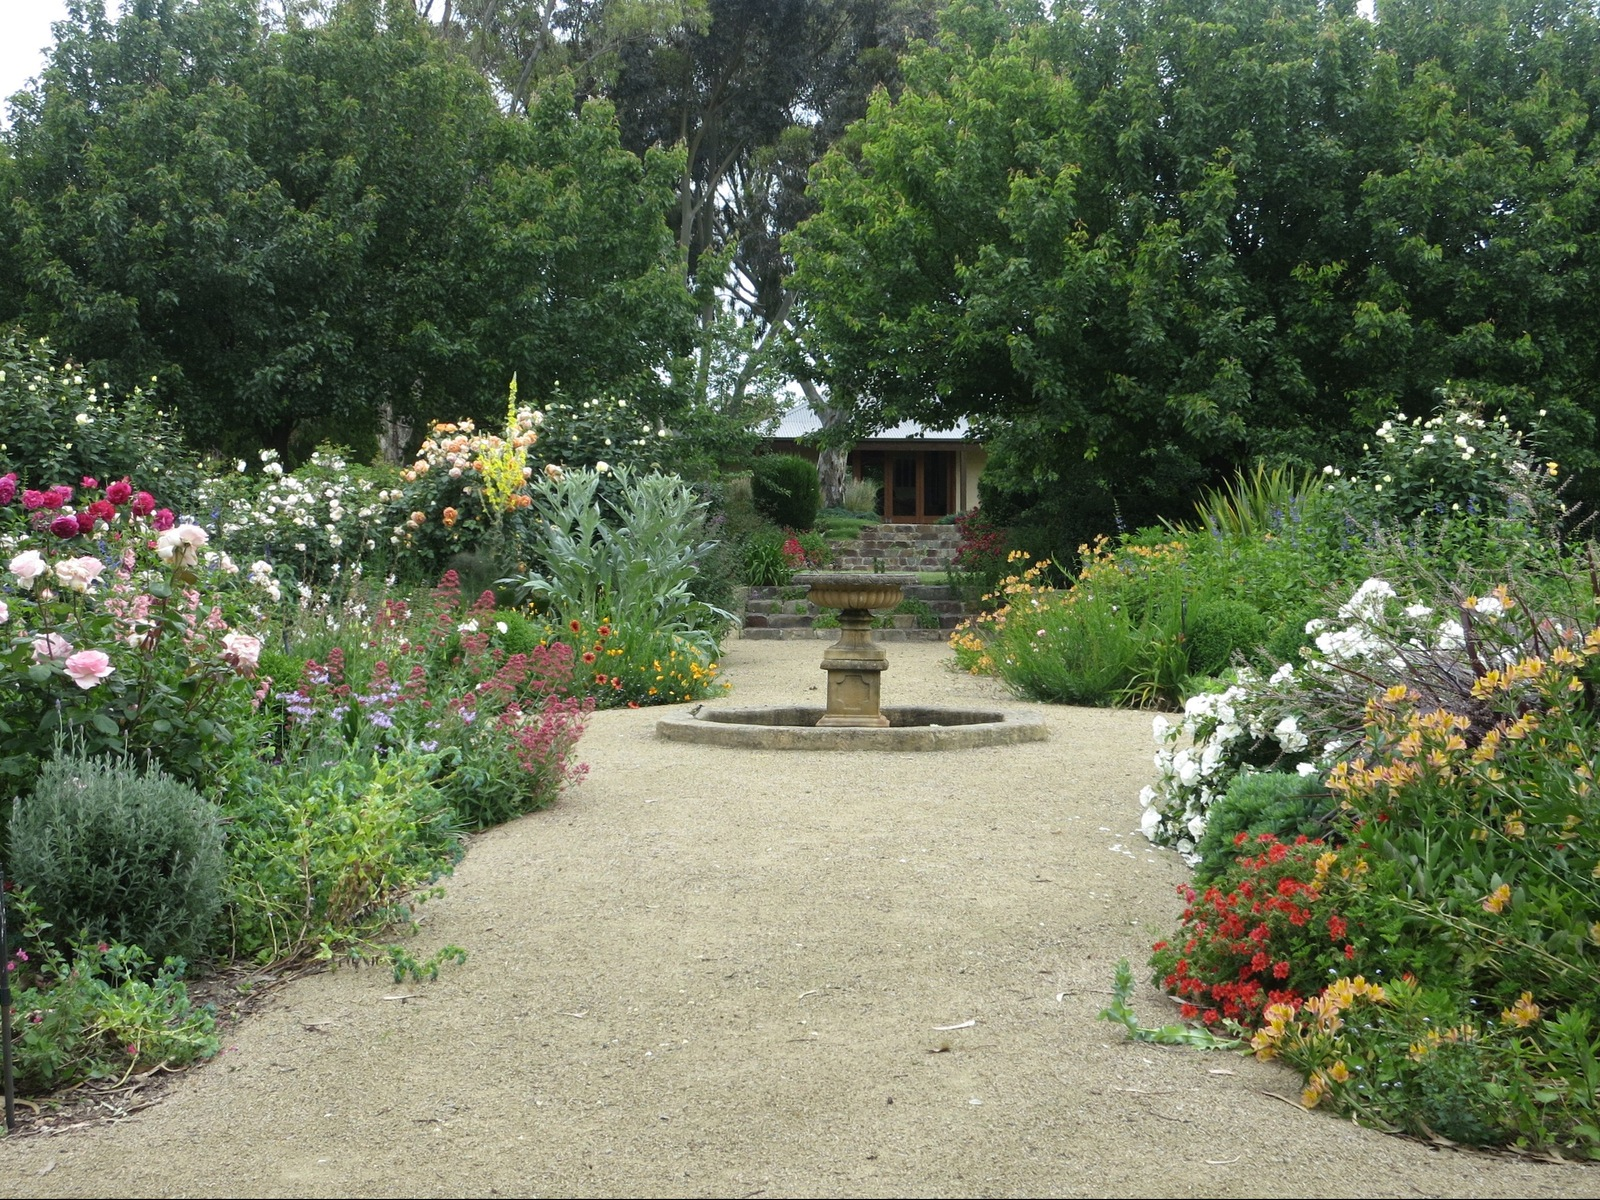 central gravel path bordered with flowering roses and perennials